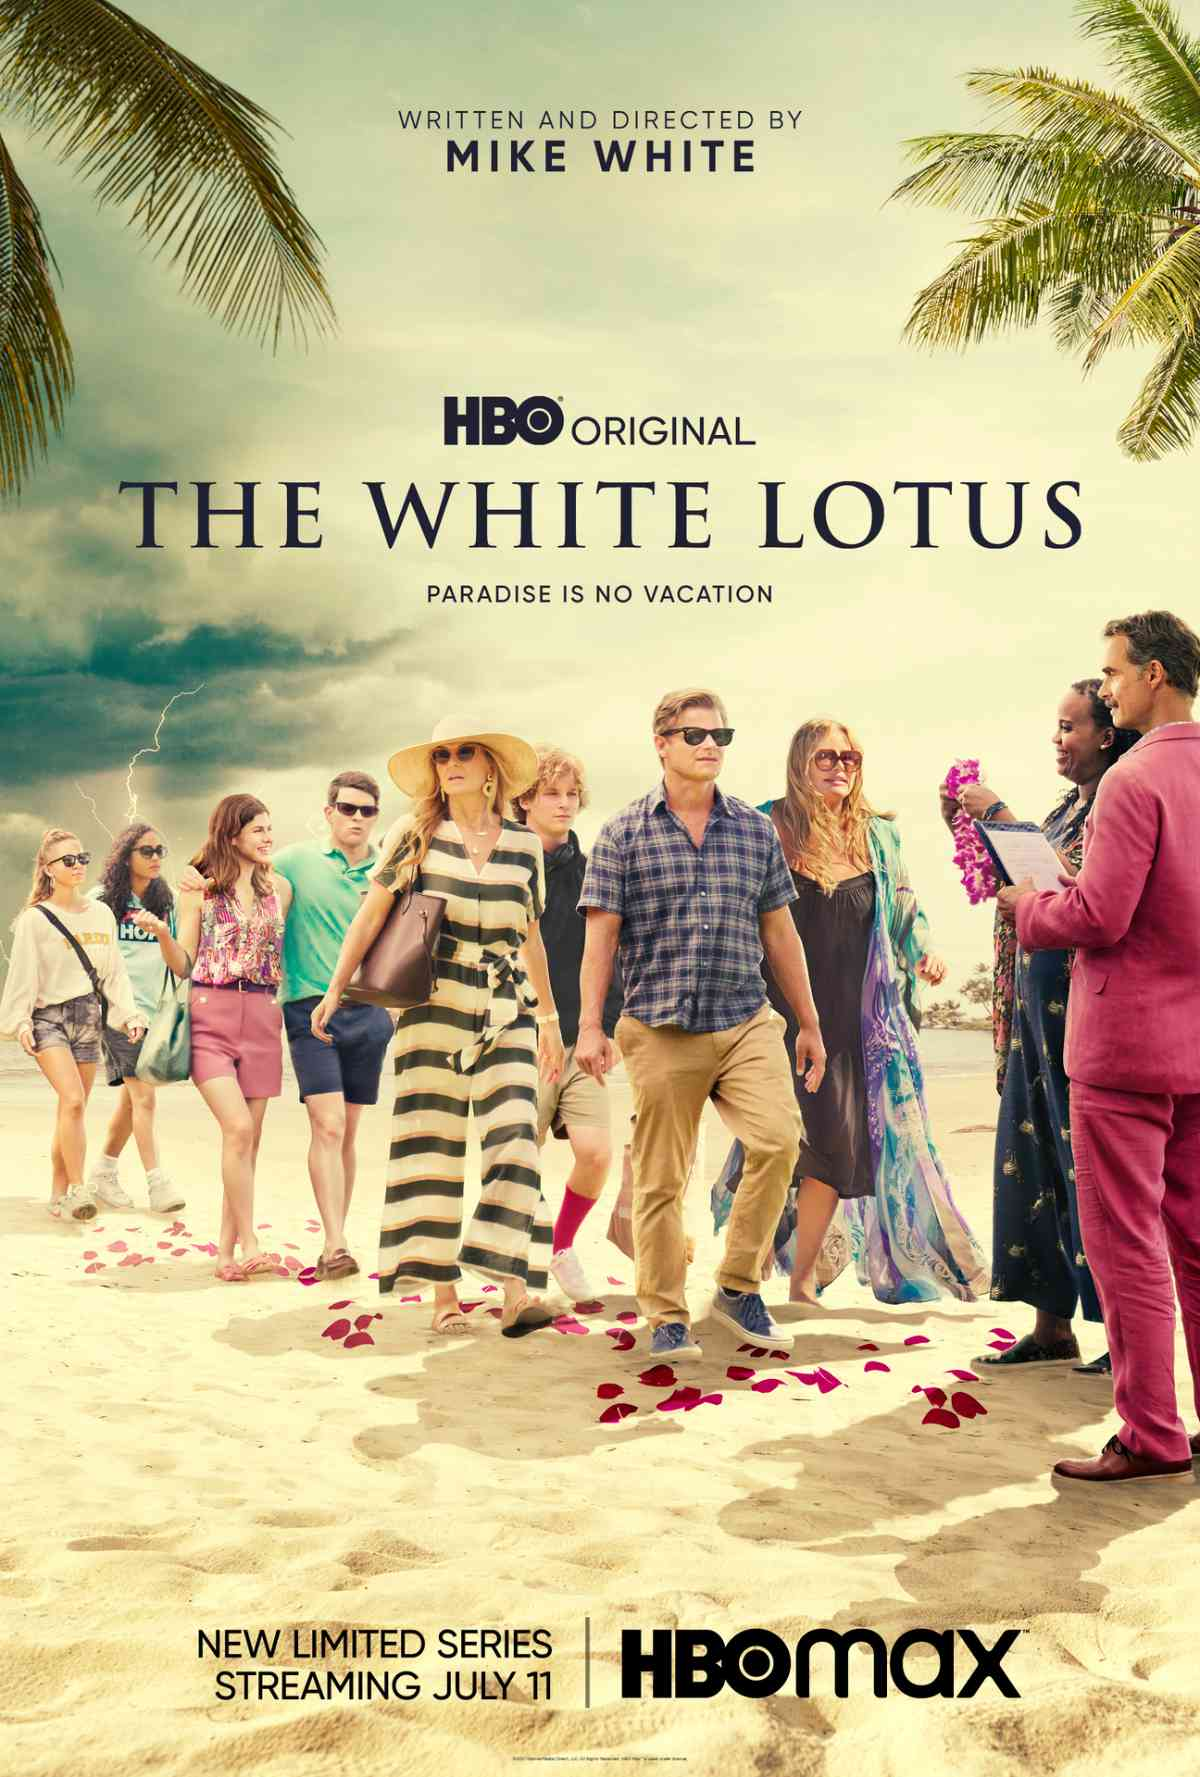 The White Lotus Trailer and Poster